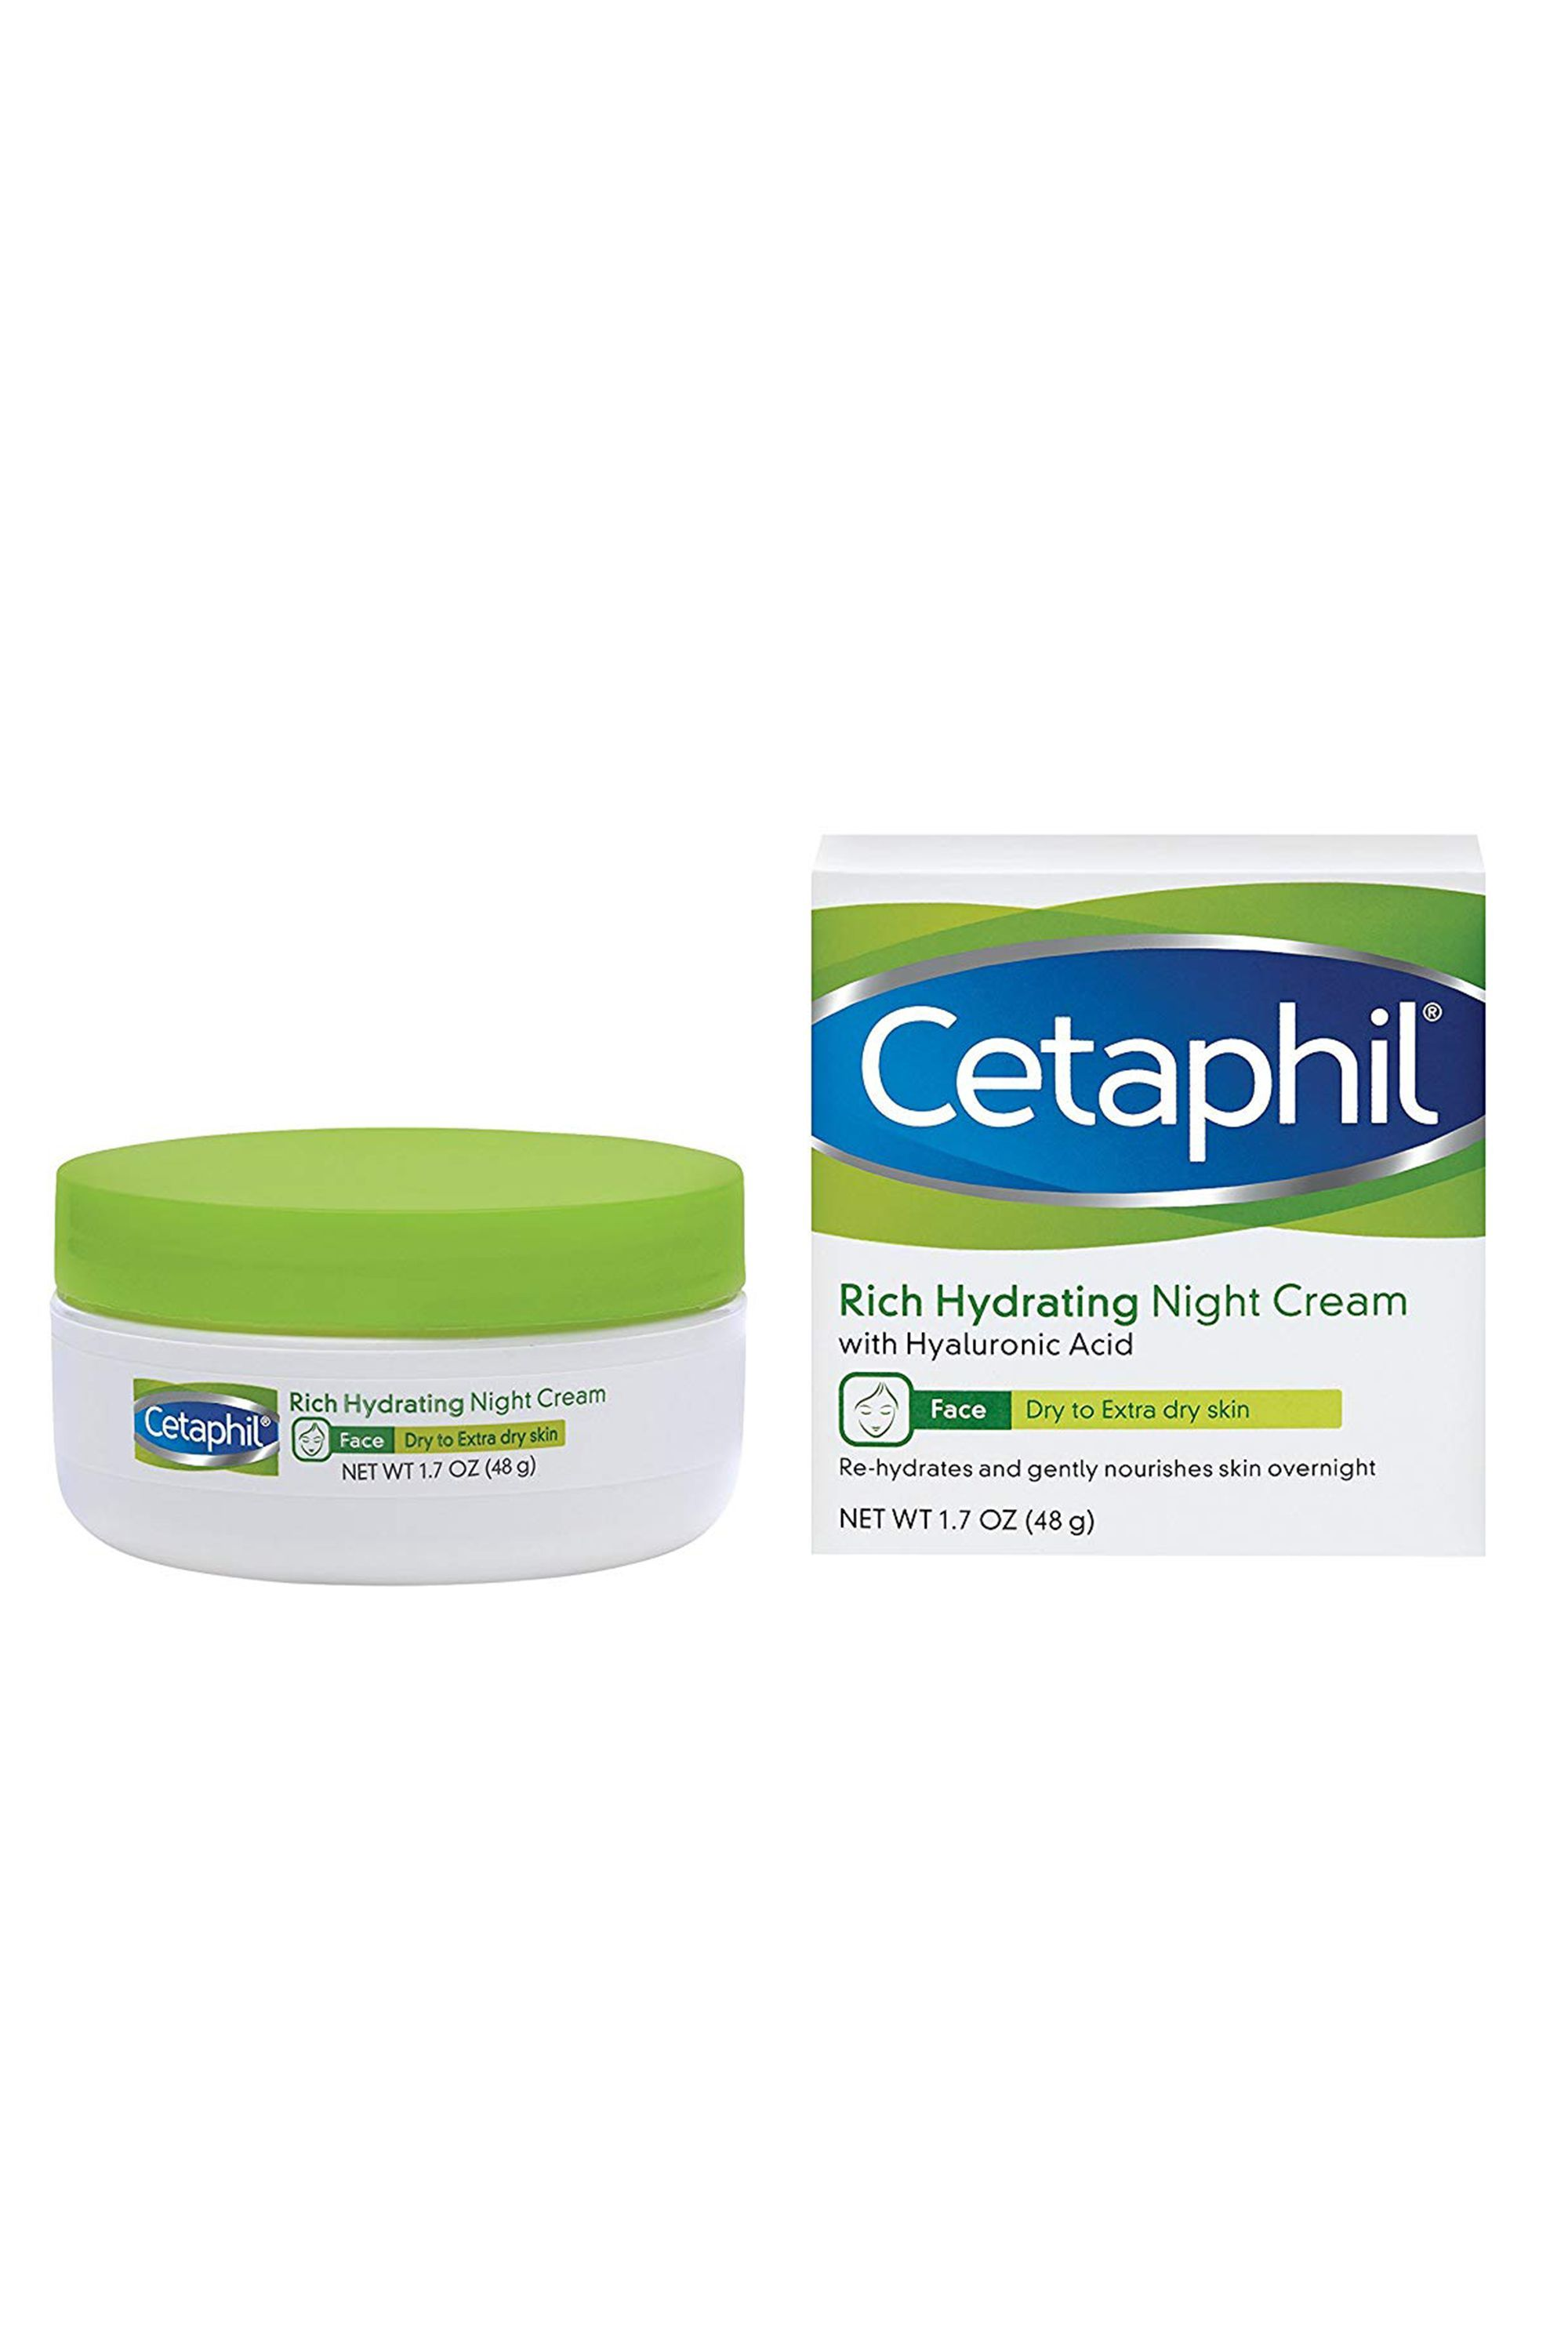 Night Creams To Treat Acne Cetaphil Rich Hydrating Night Cream with Hyaluronic Acid Cetaphil amazon.com $19.99 $10.99 (45% off) SHOP NOW